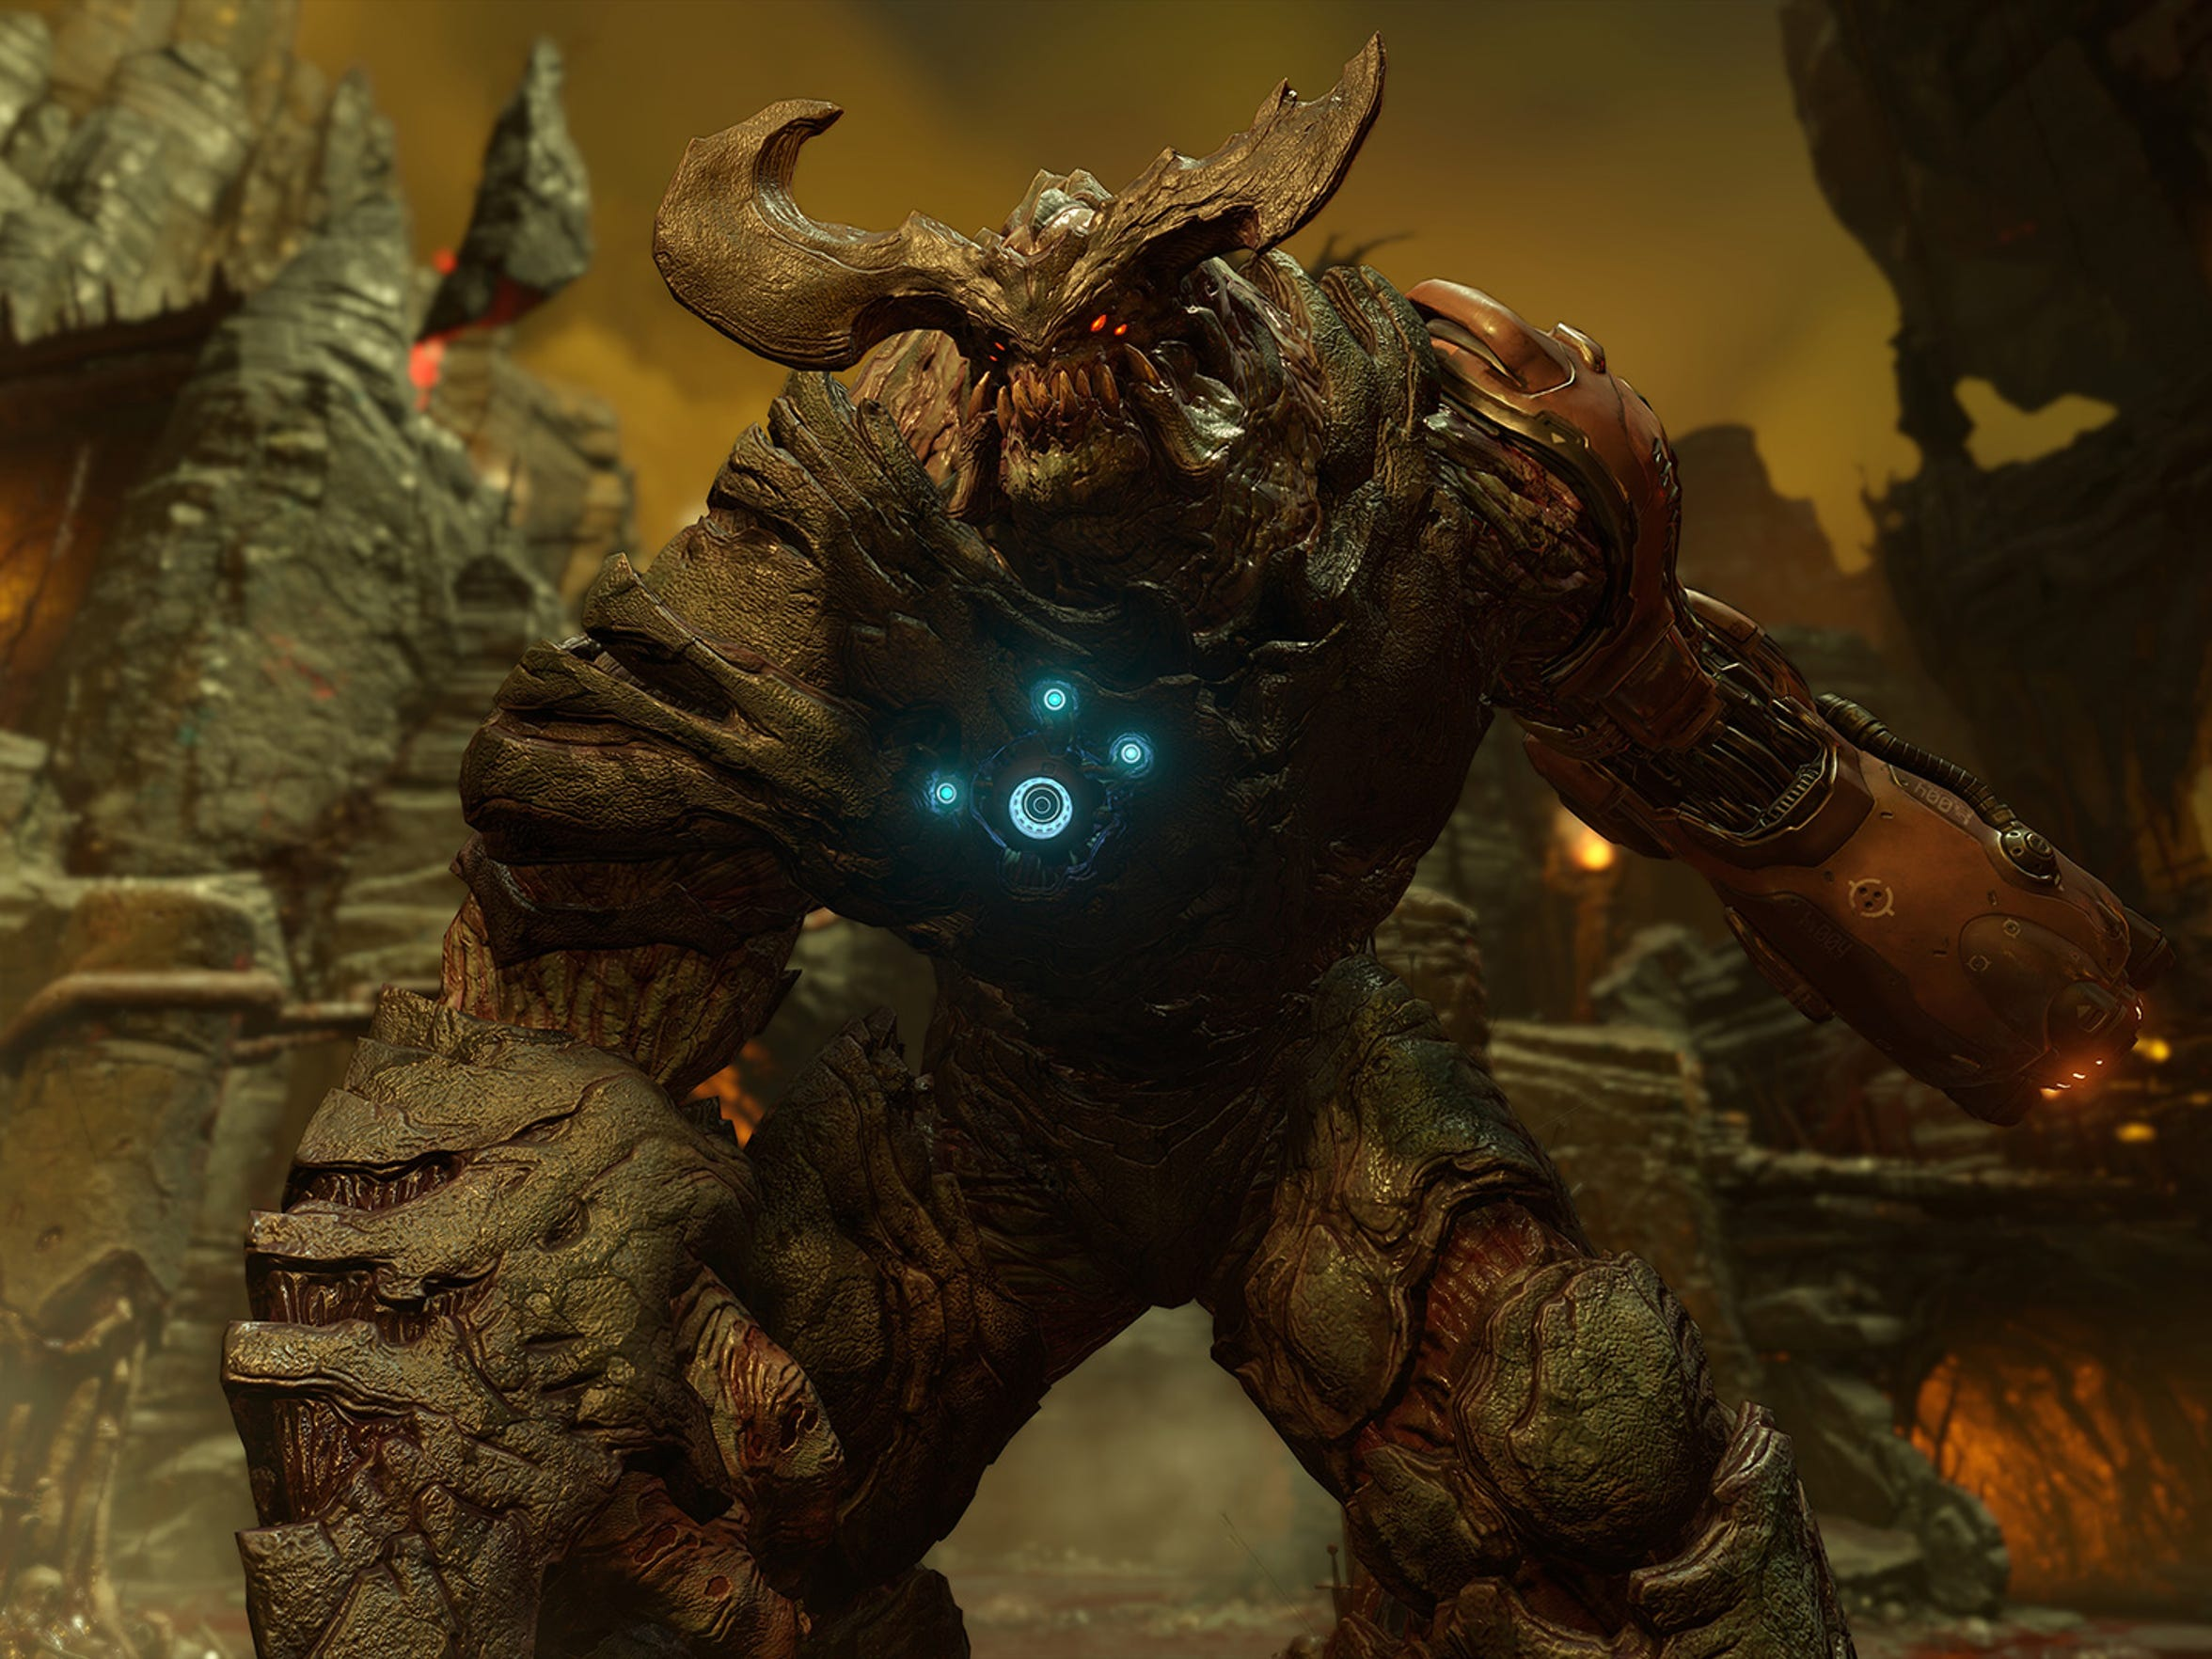 The Cyberdemon in Doom.